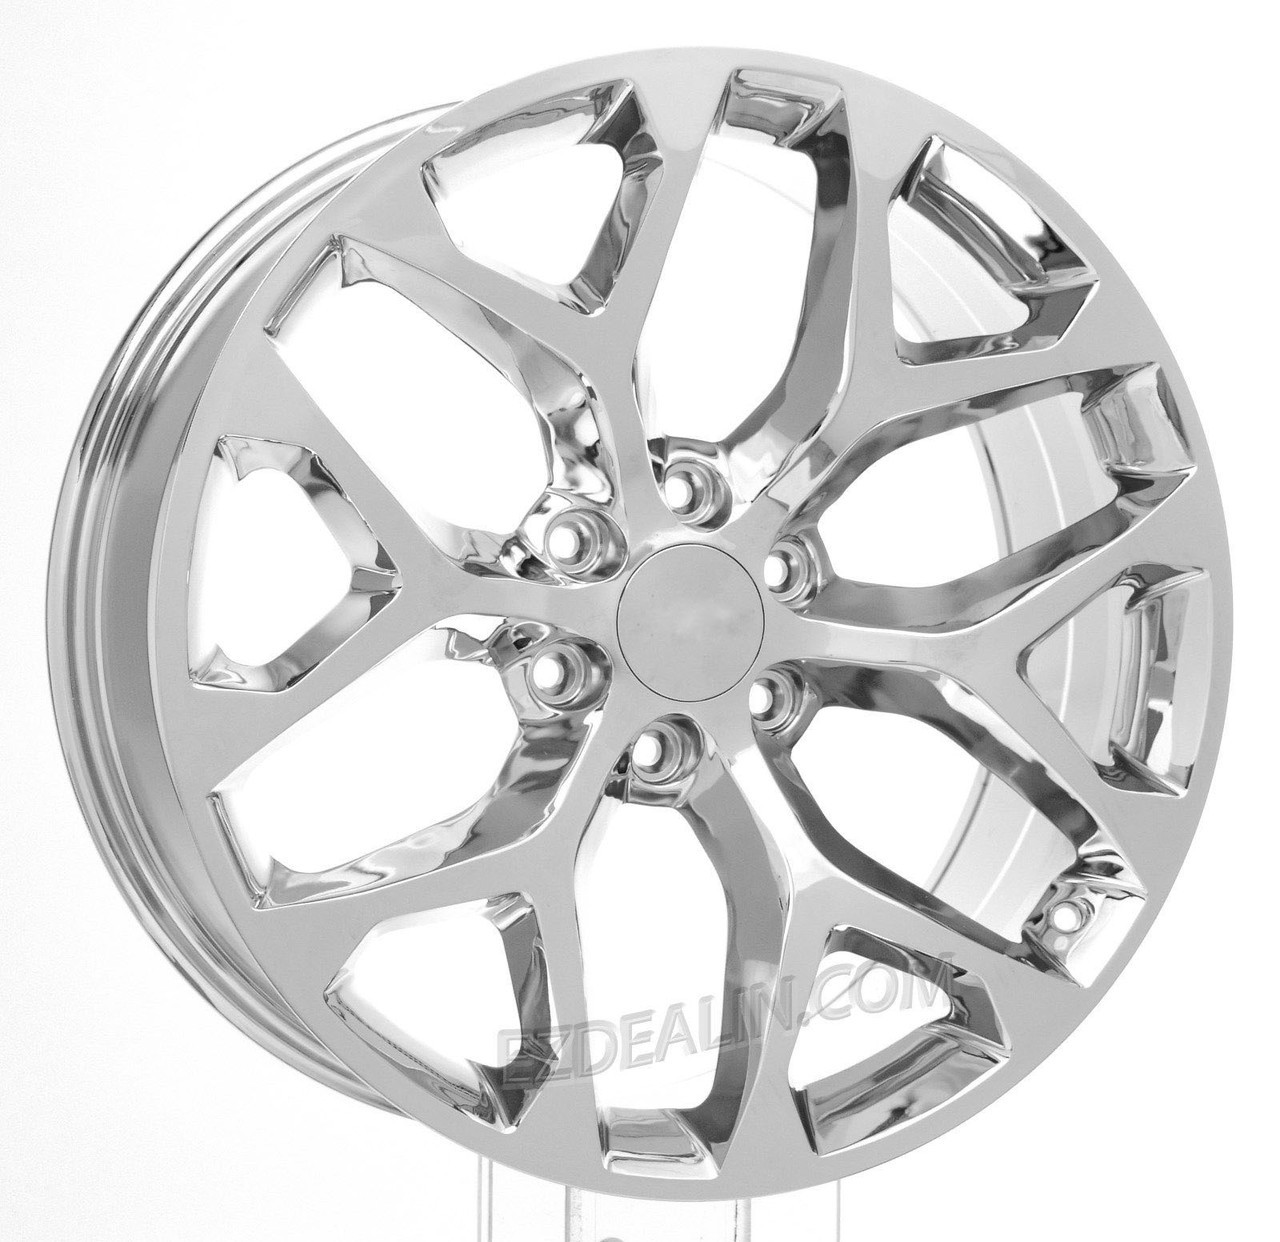 Chevy 22 Inch Chrome Snowflake For Chevy Silverado Tahoe